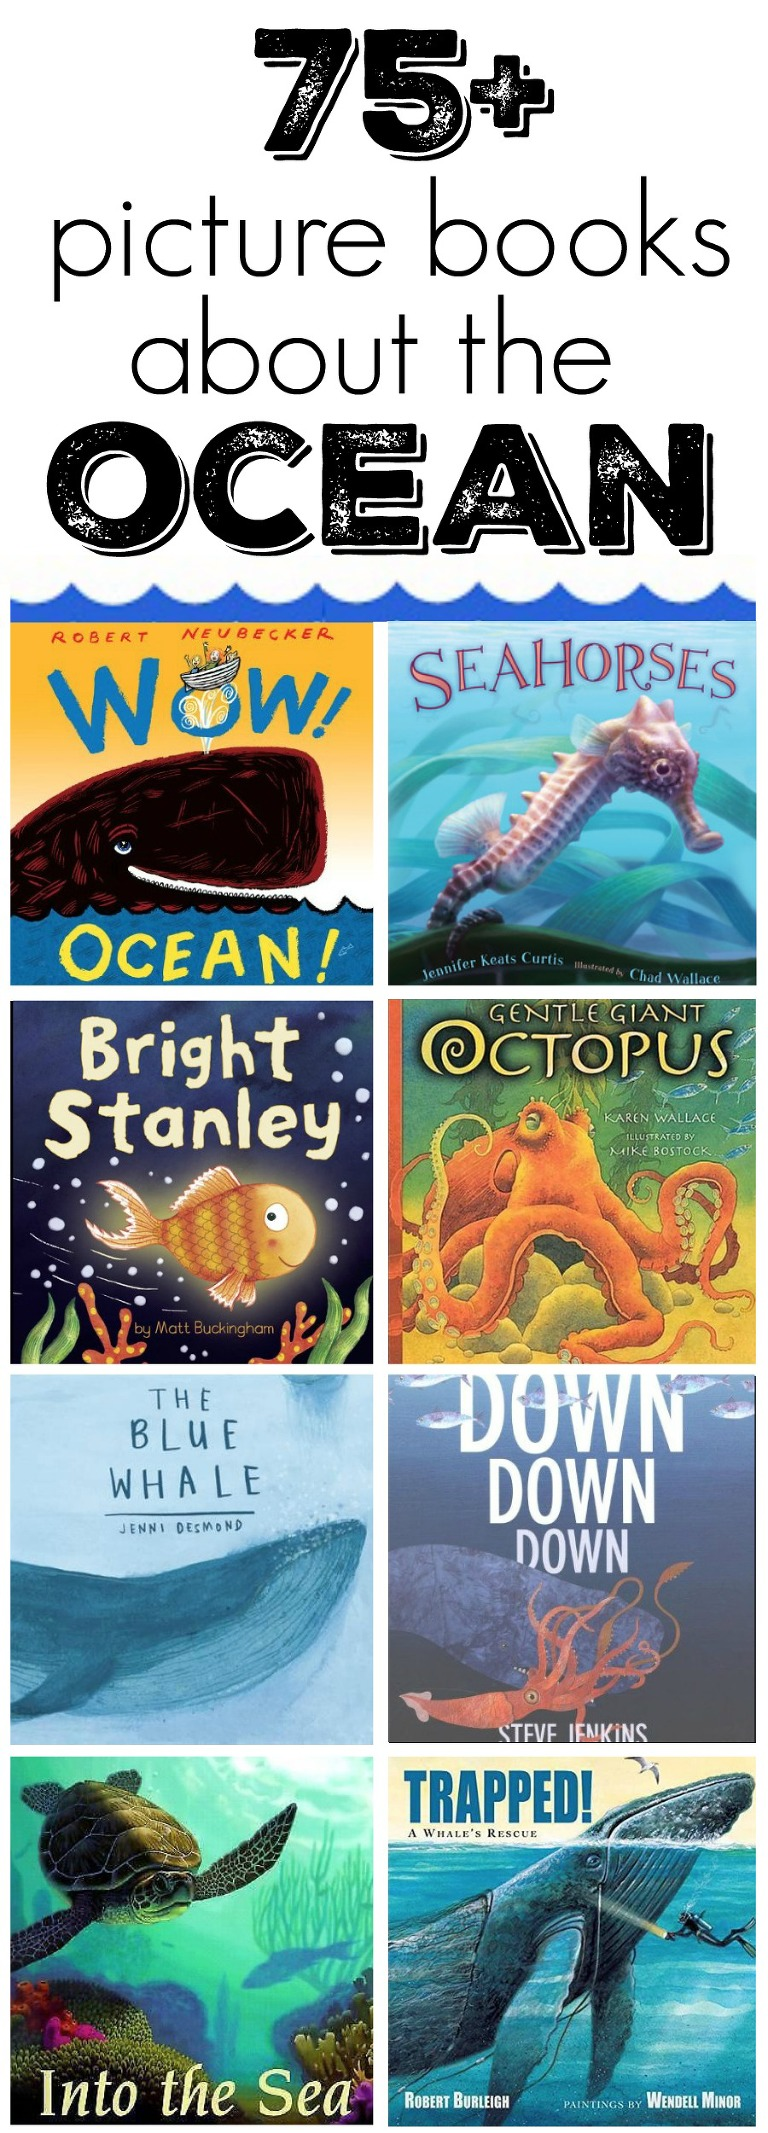 picture books about creatures that live under the sea. Picture books about fish, whales, sharks and more. Fun books to read during under the sea theme